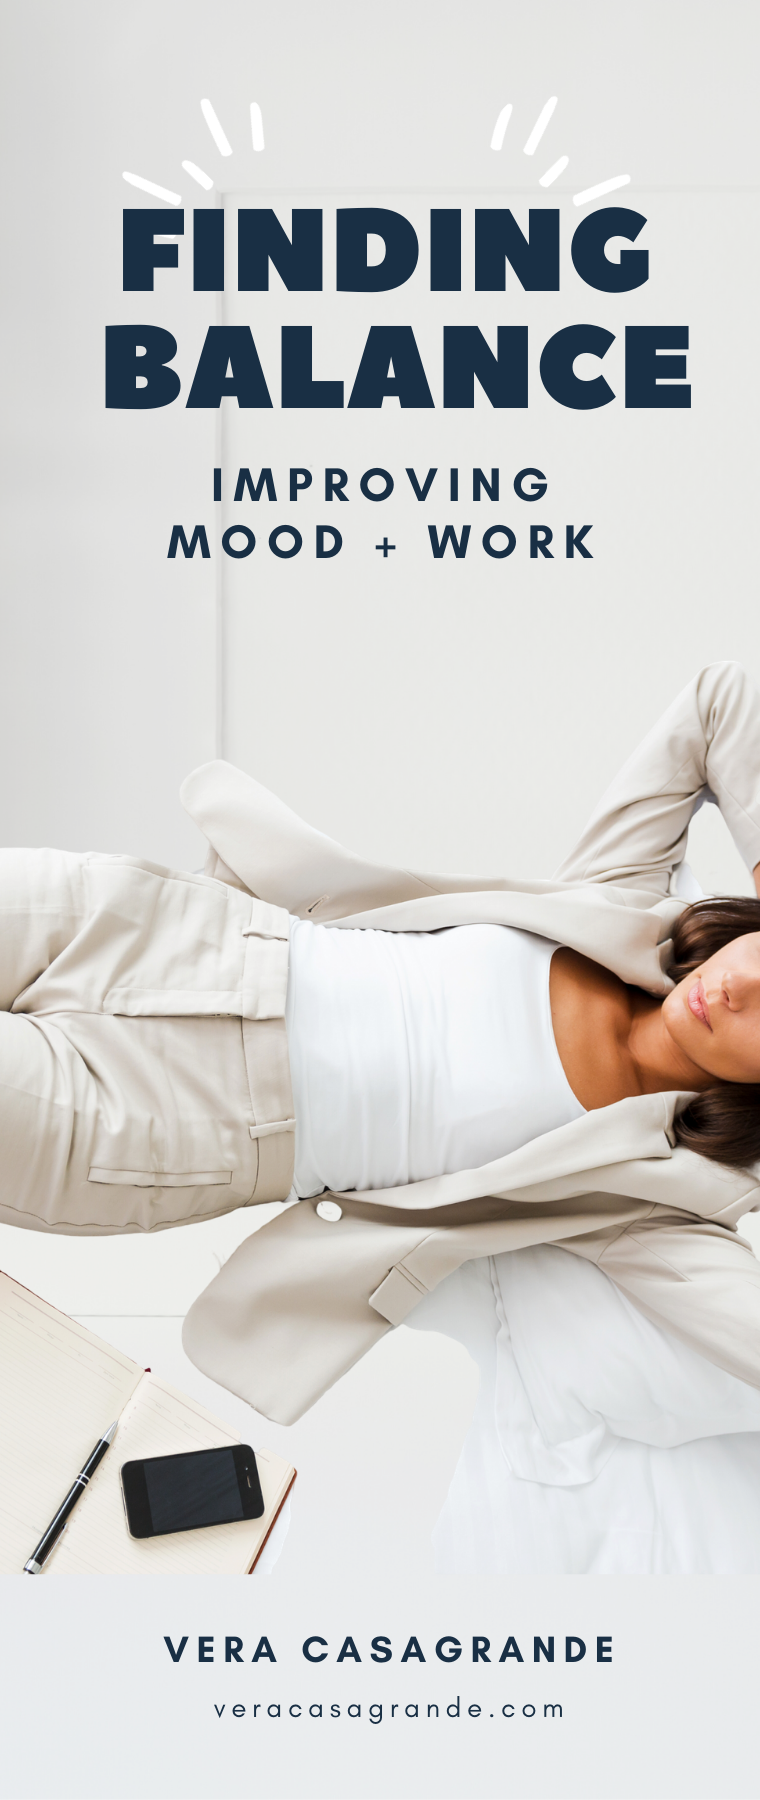 Vera Casagrande discusses finding balance, reducing anxiety, stress and improving mood while at home.